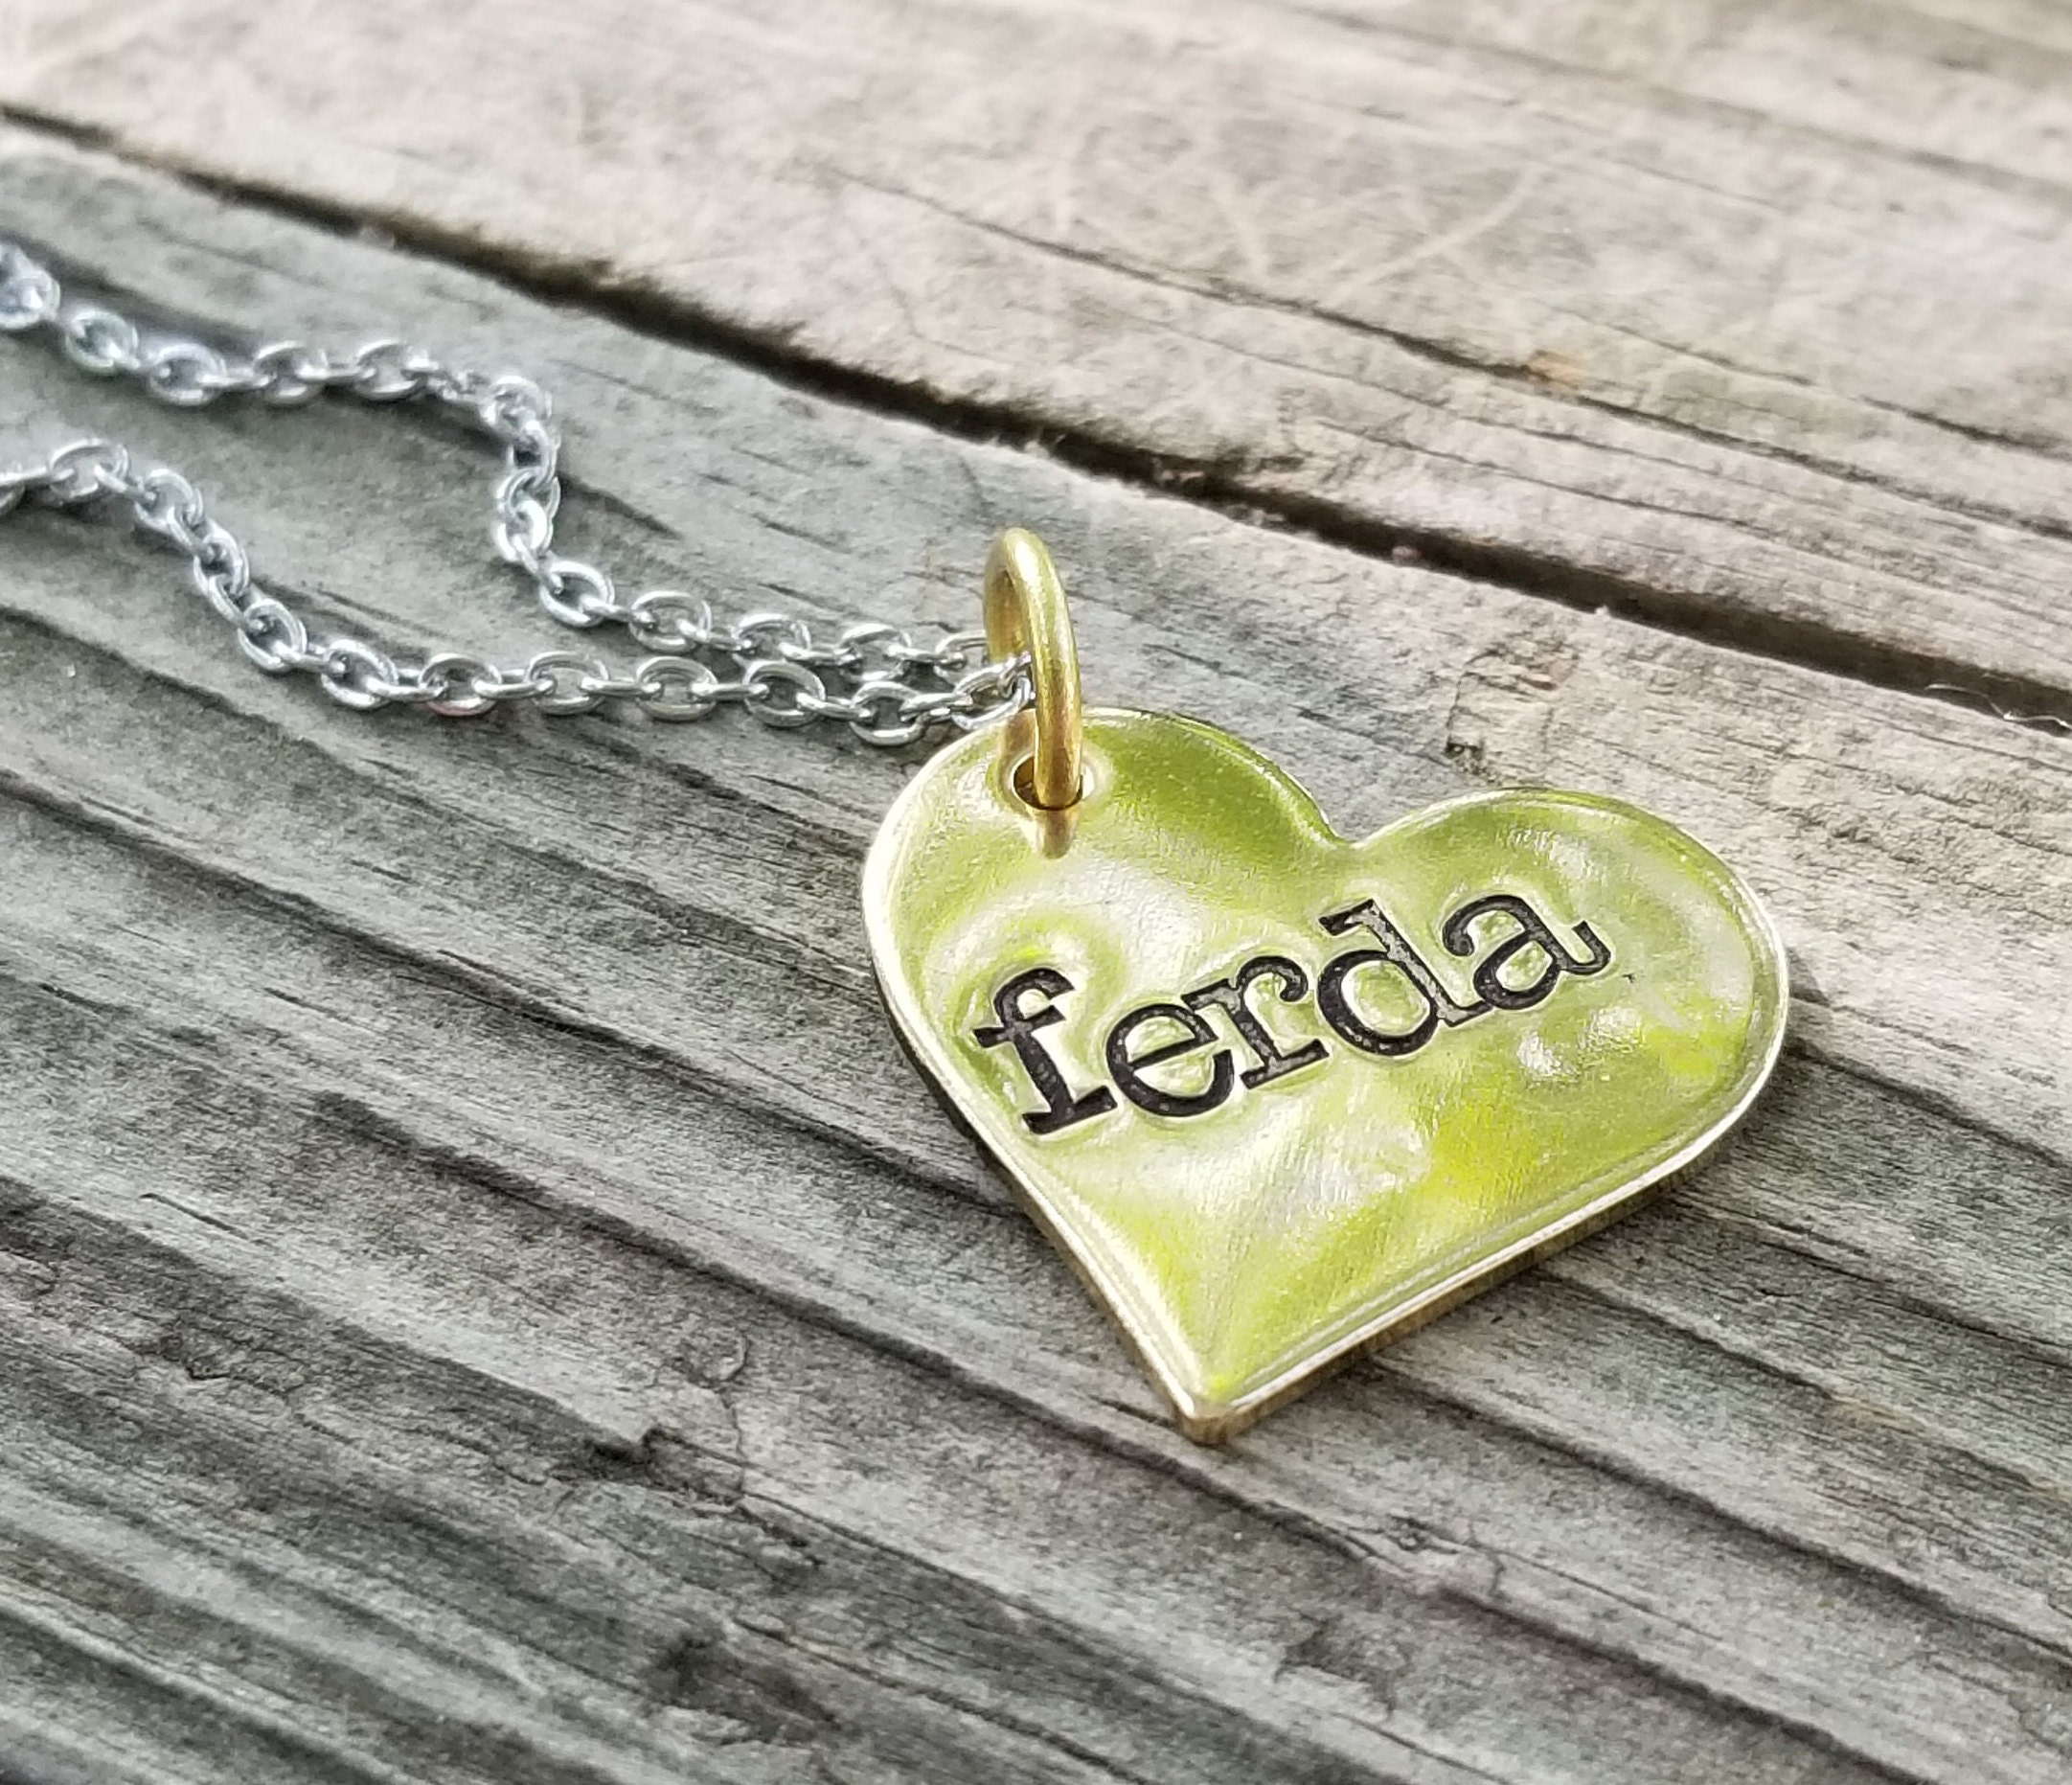 Letterkenny Necklace, ferda, pitter patter, puckbunny, hard no, 10 ply,  couples gift, to be fair, letterkenny merchandise, Canadian TV Show